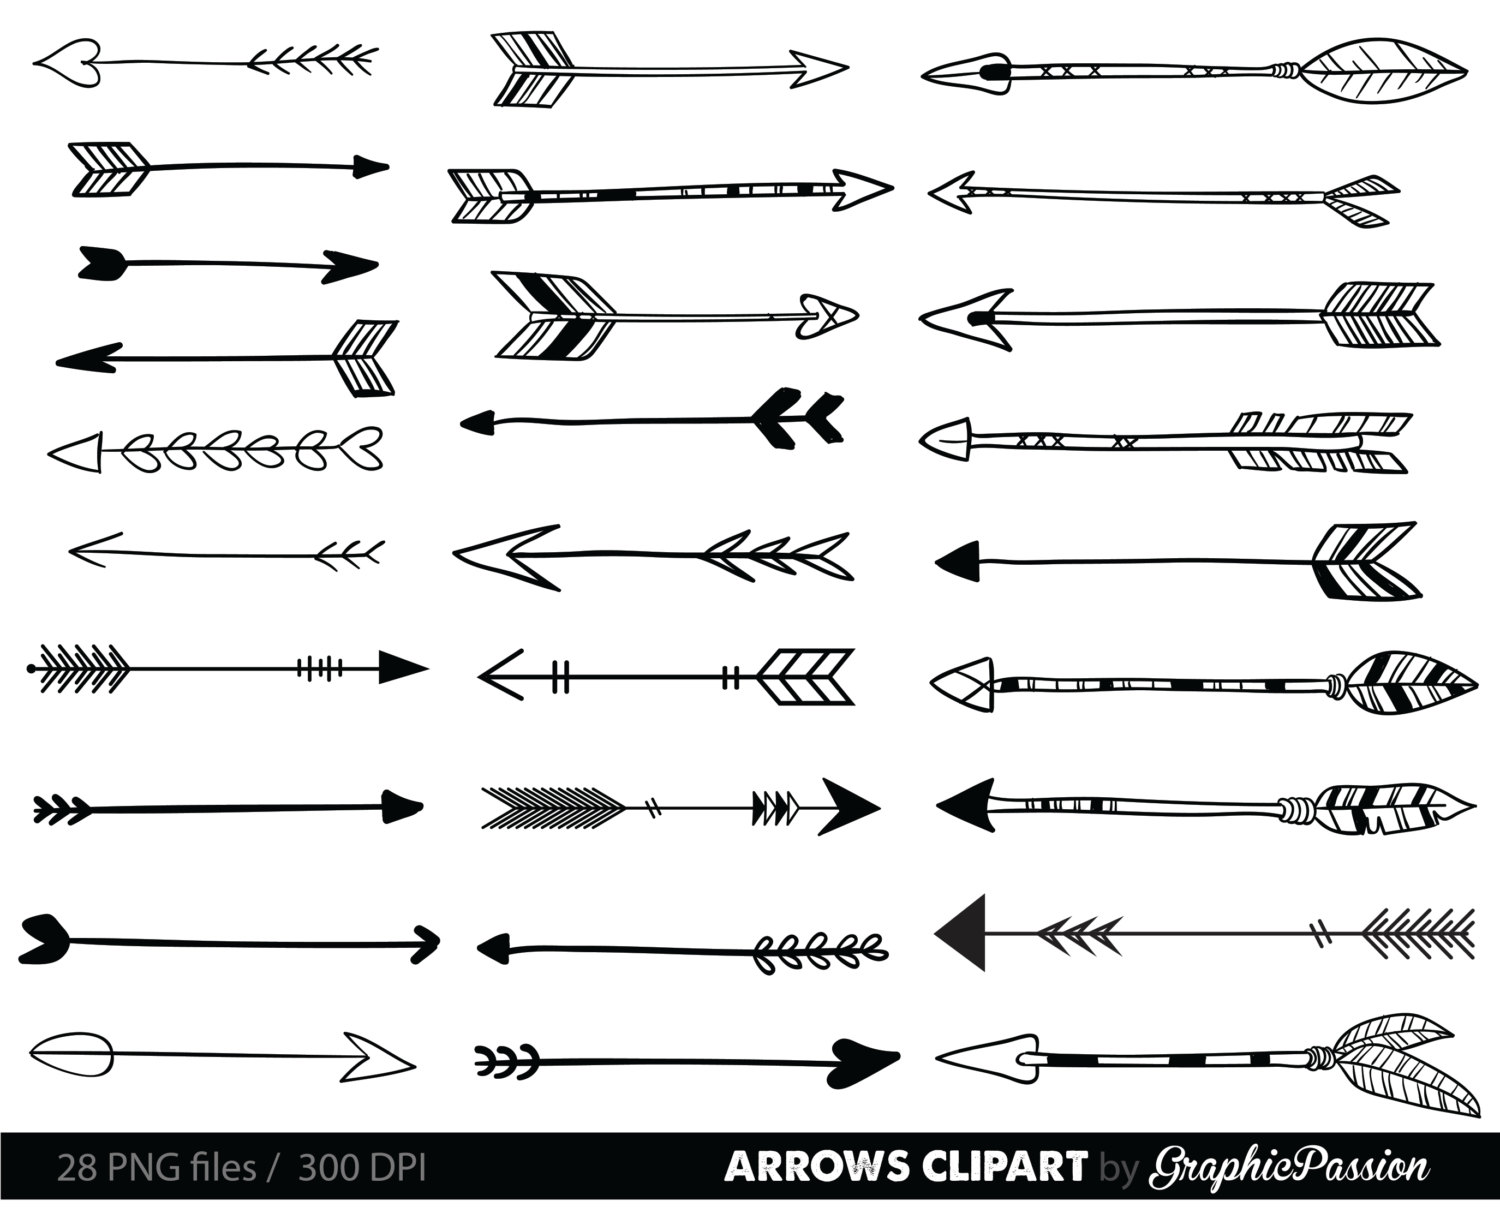 Arrows clip art, tribal arrow clipart, archery hand drawn arrows, doodle drawing tribal digital INSTANT DOWNLOAD